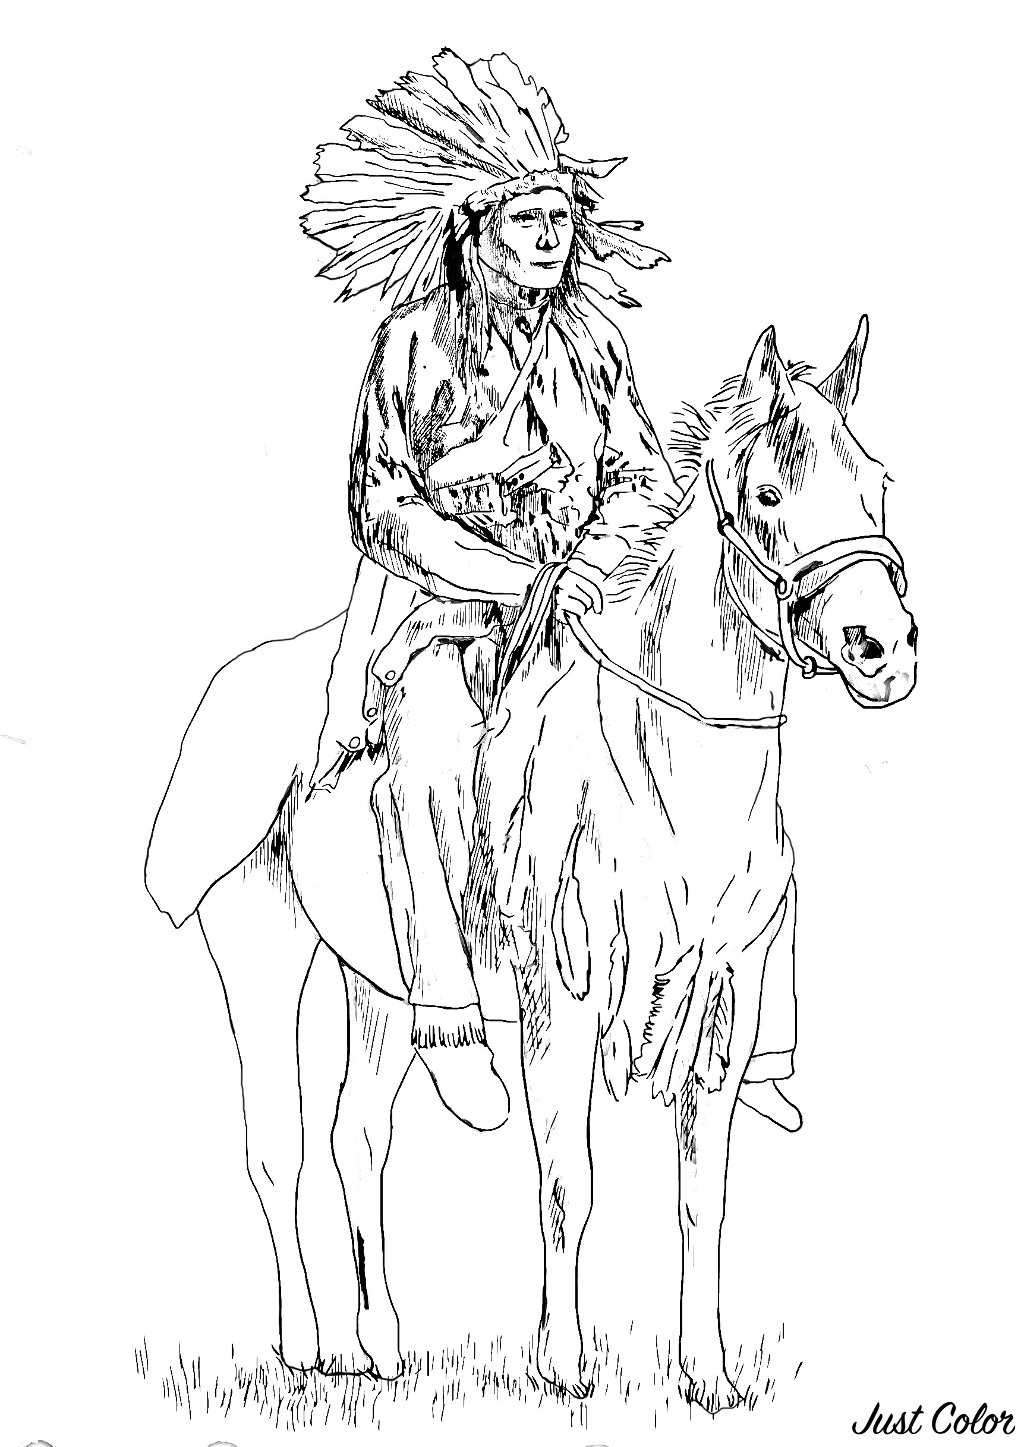 Magnificient drawing of a great Native American Chief